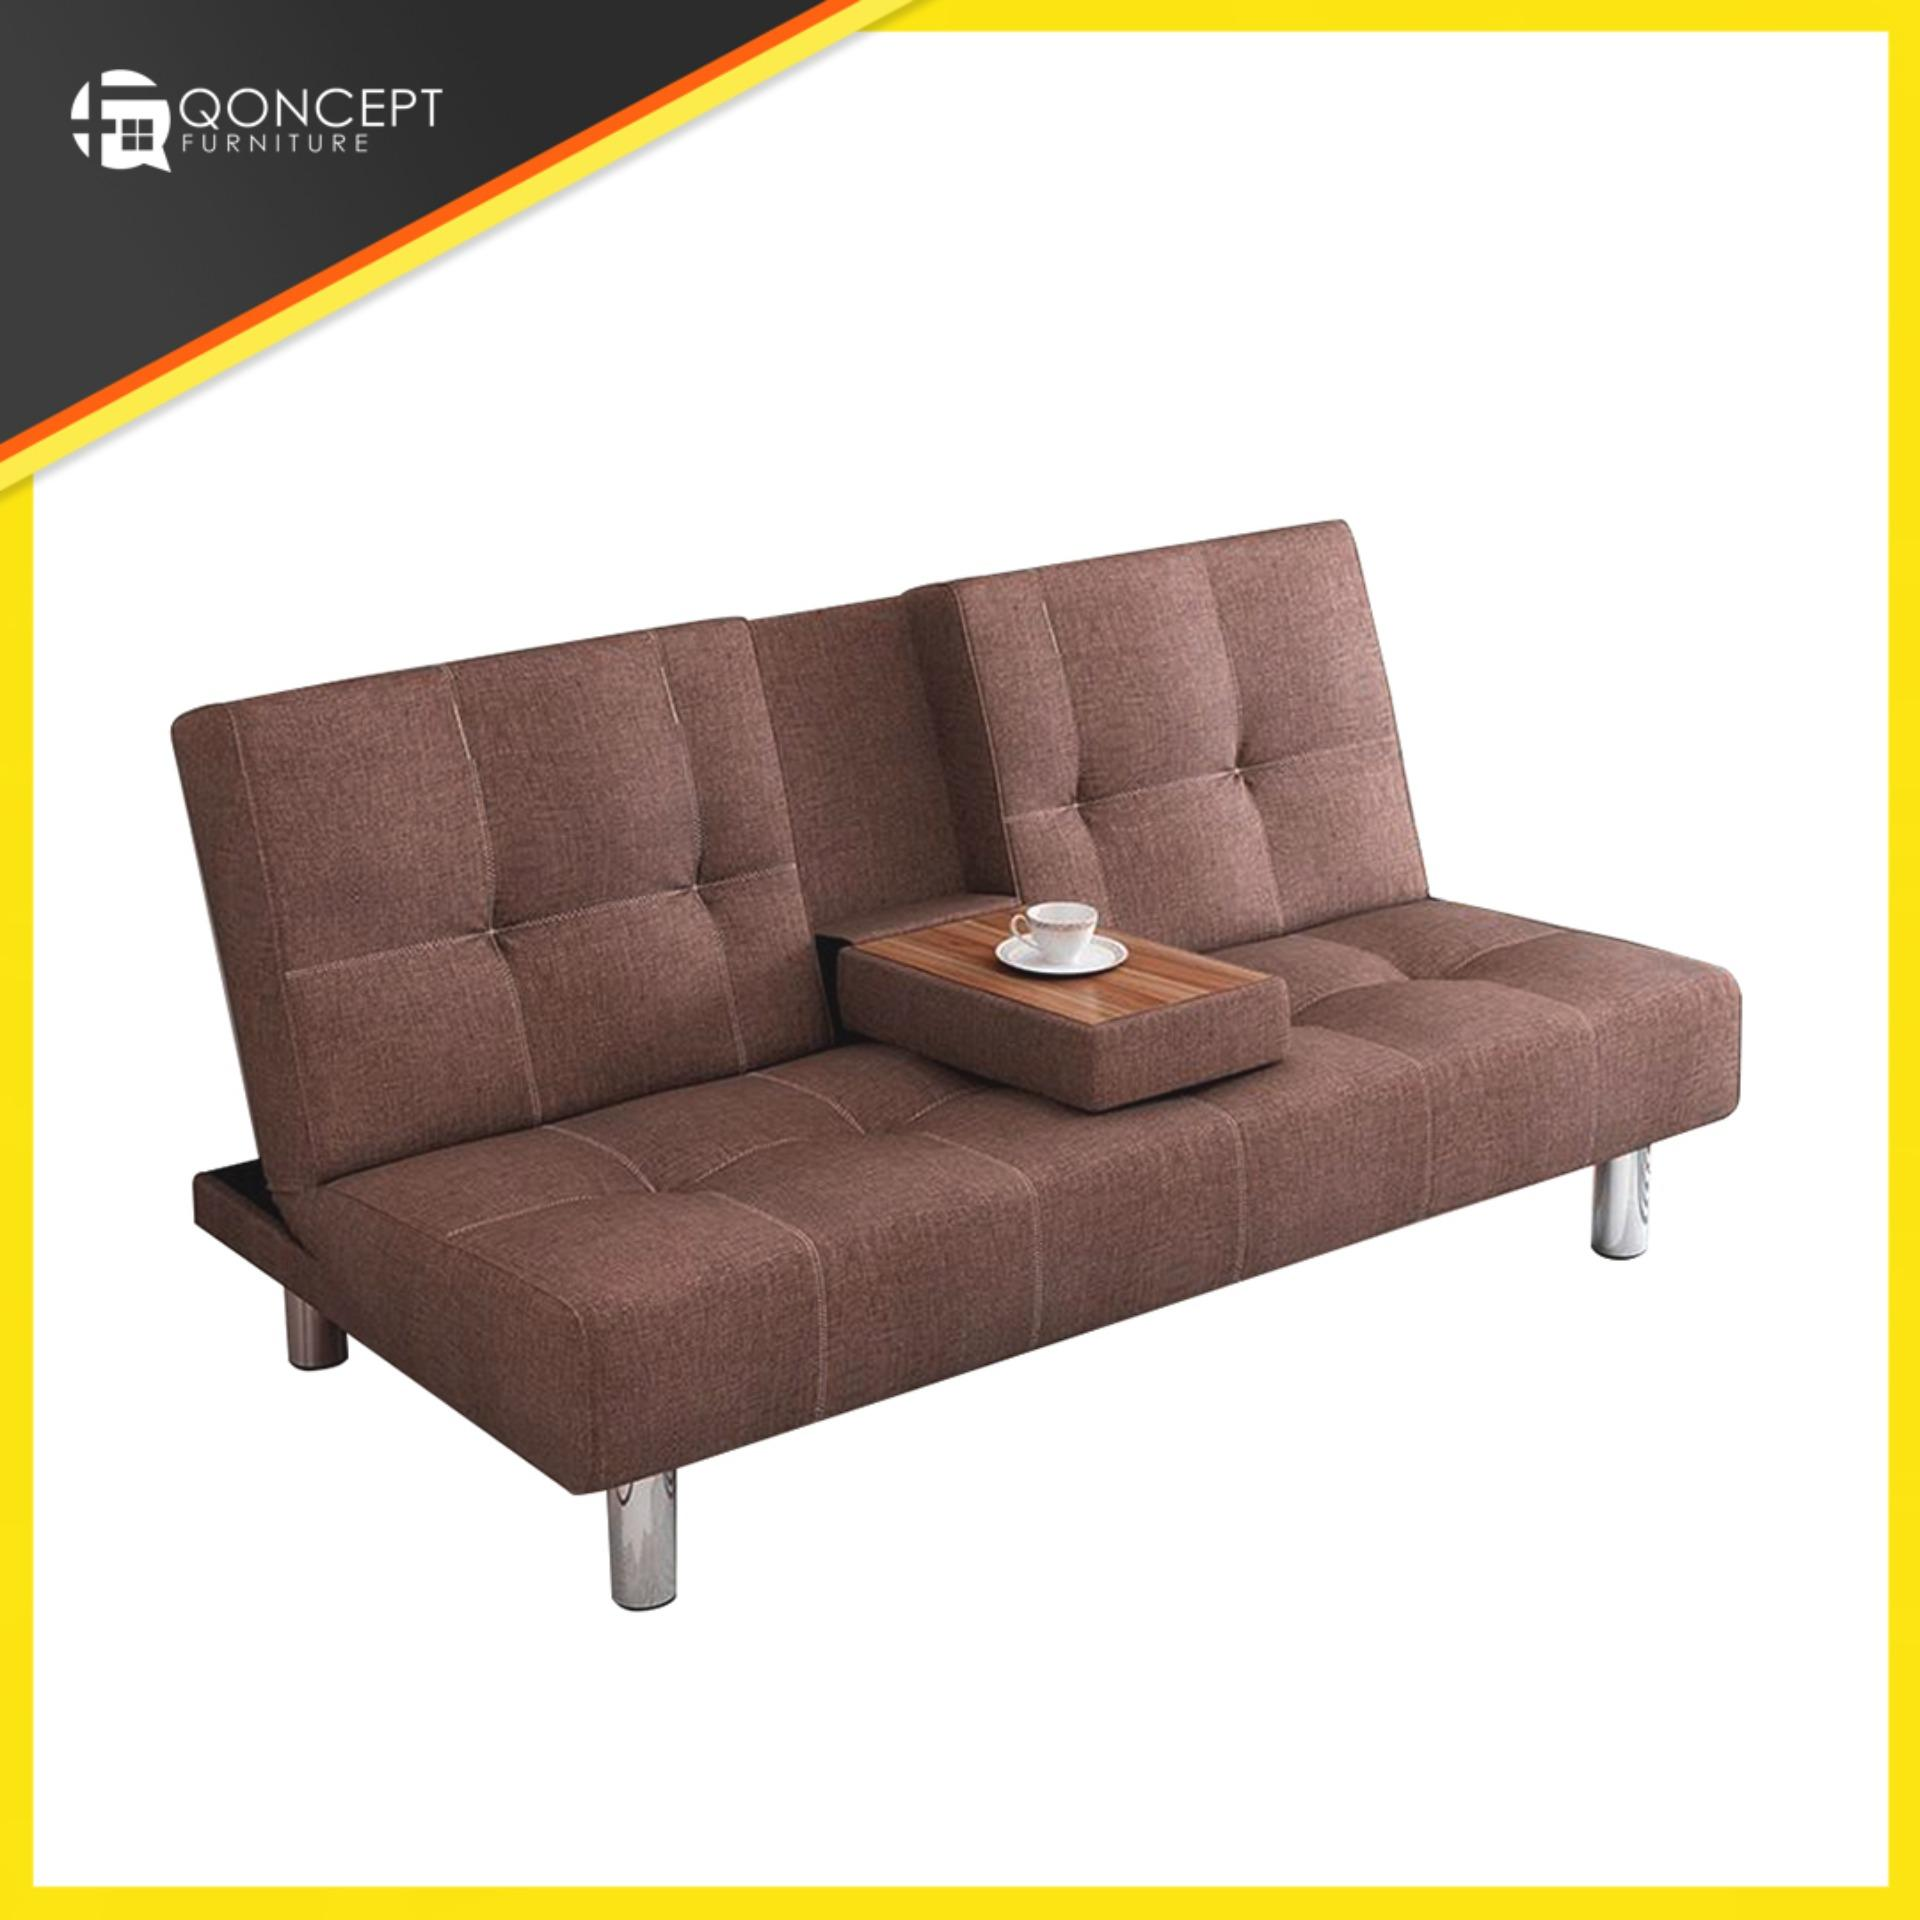 sofa bed malaysia murah small scale sectional sofas for sale home prices brands review in philippines 3 1 with coffee table